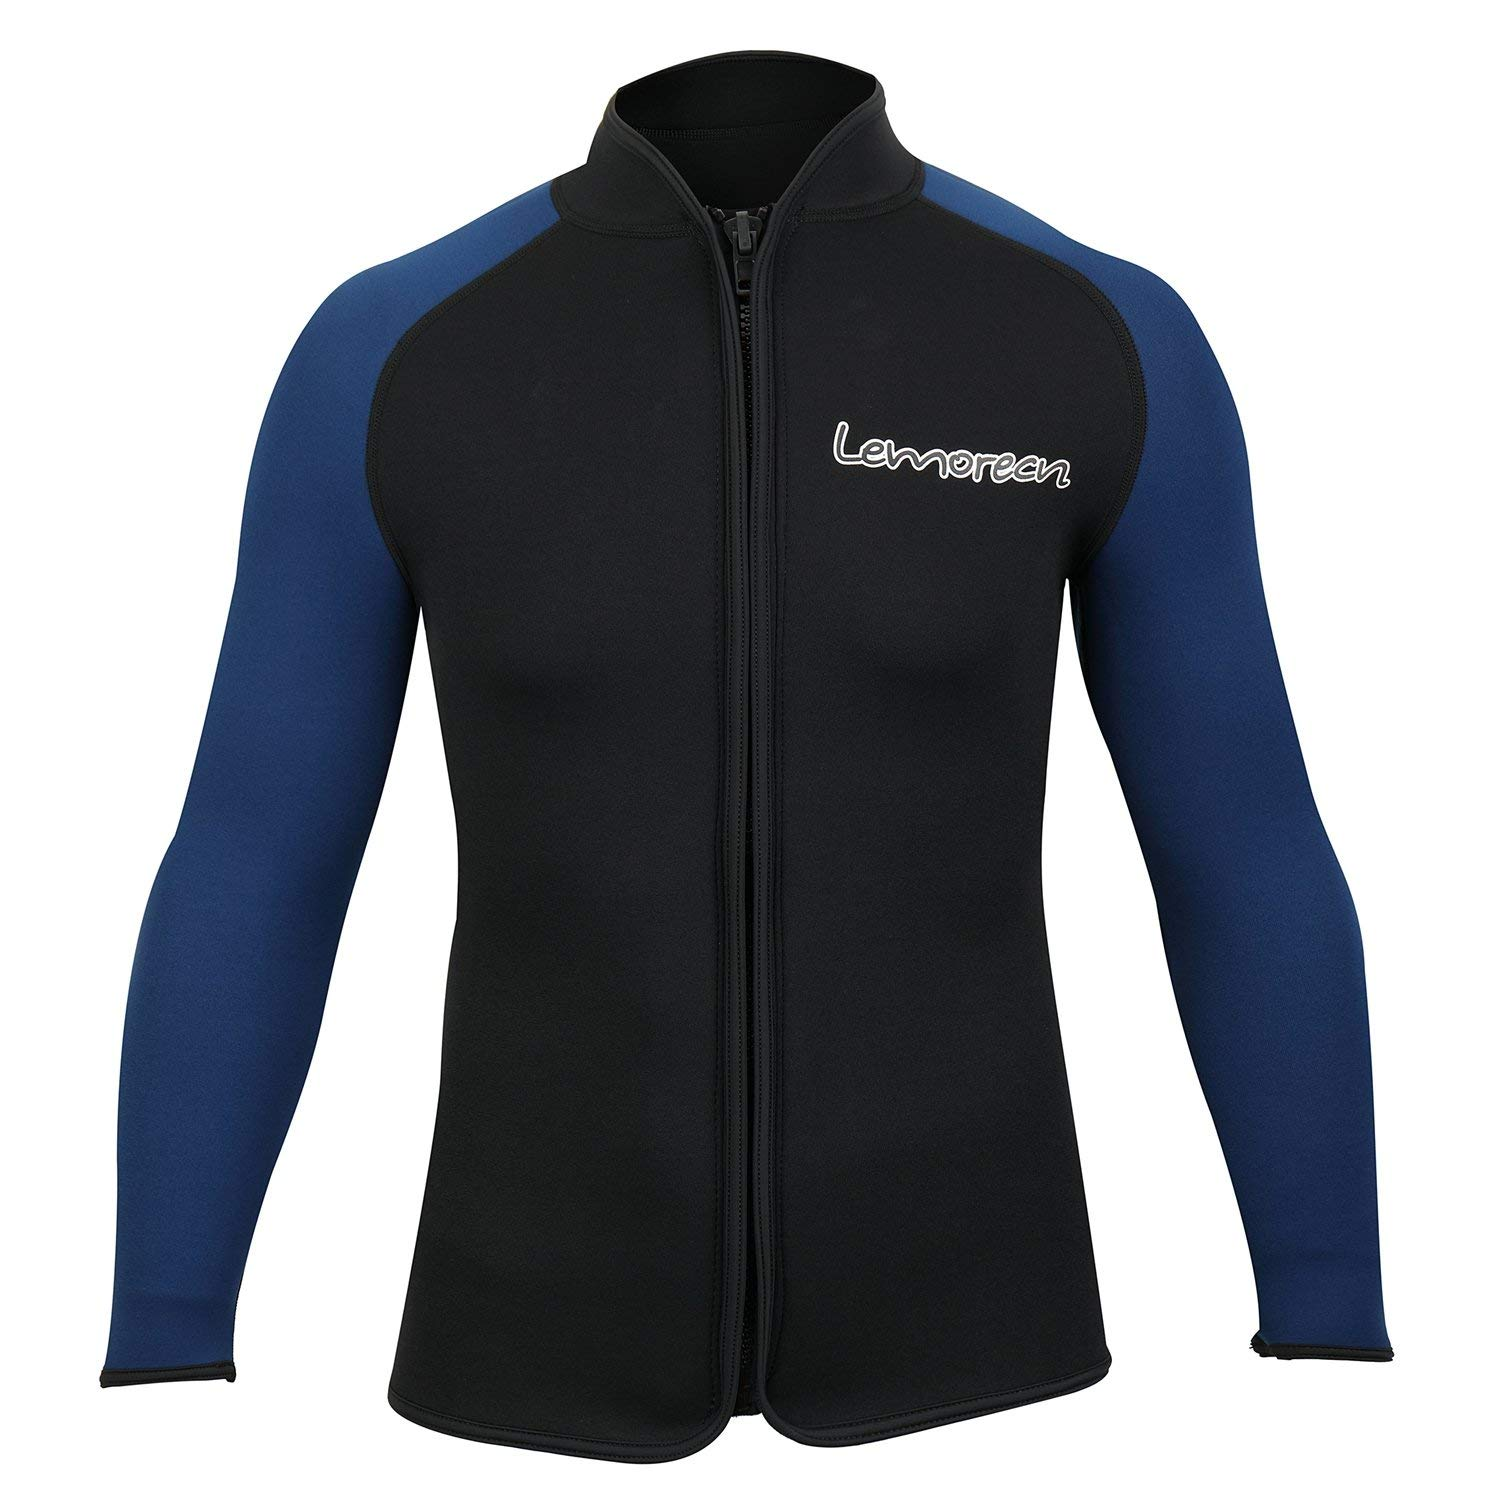 Lemorecn Adult's 3mm Wetsuits Jacket Long Sleeve Neoprene Wetsuits Top (2031blackblueM) by Lemorecn